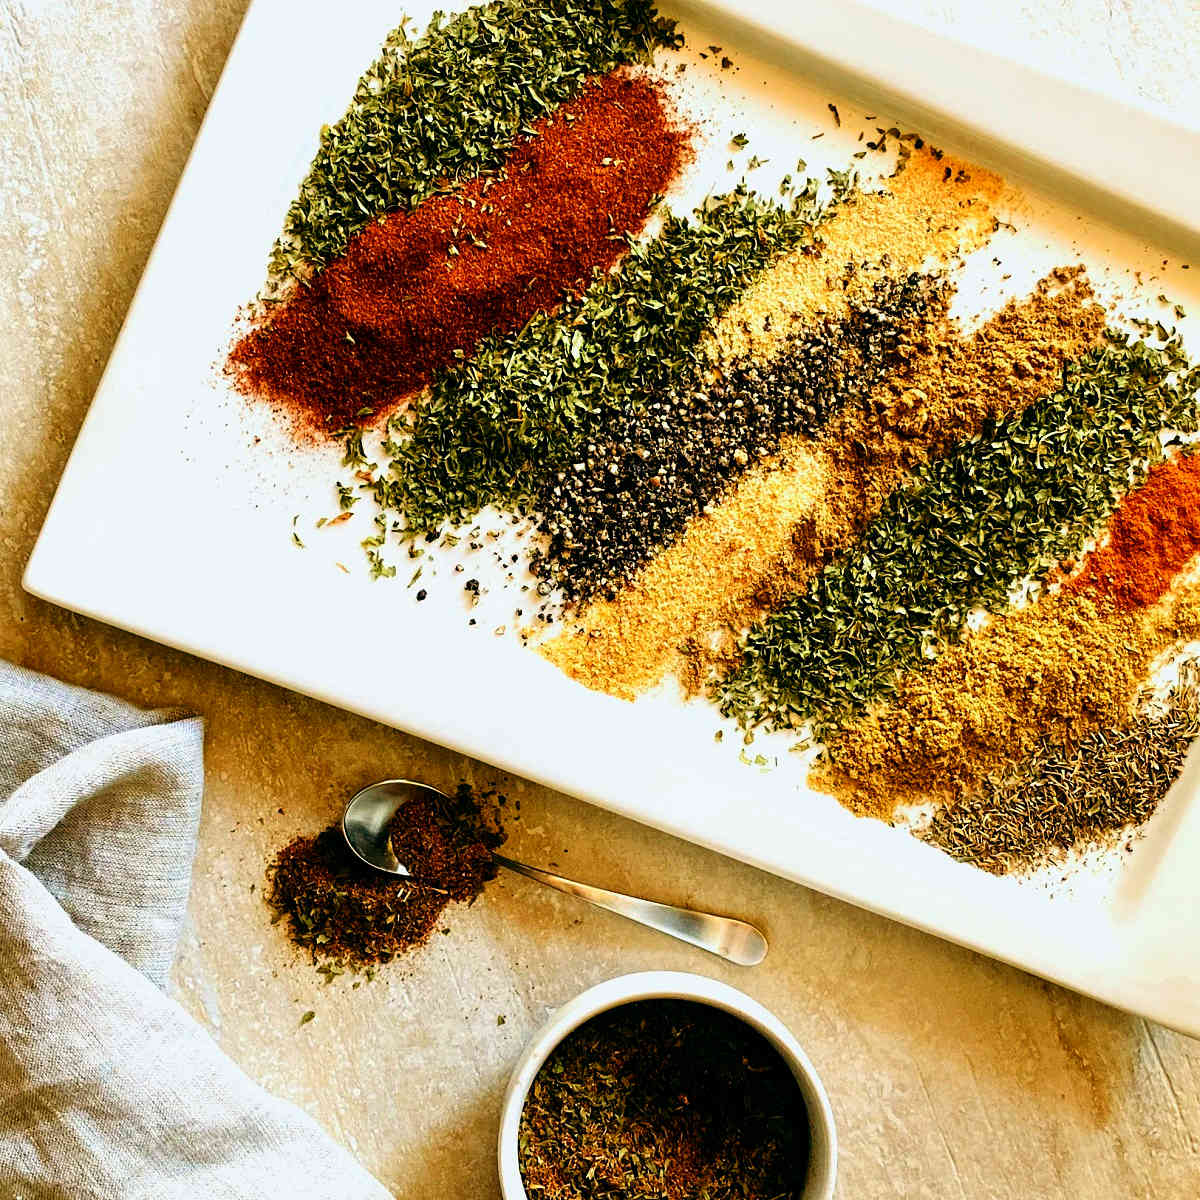 Tempero baiano brazilian spices layered next to each other on a white plate next to a dish of mixed seasoning and a spoonful